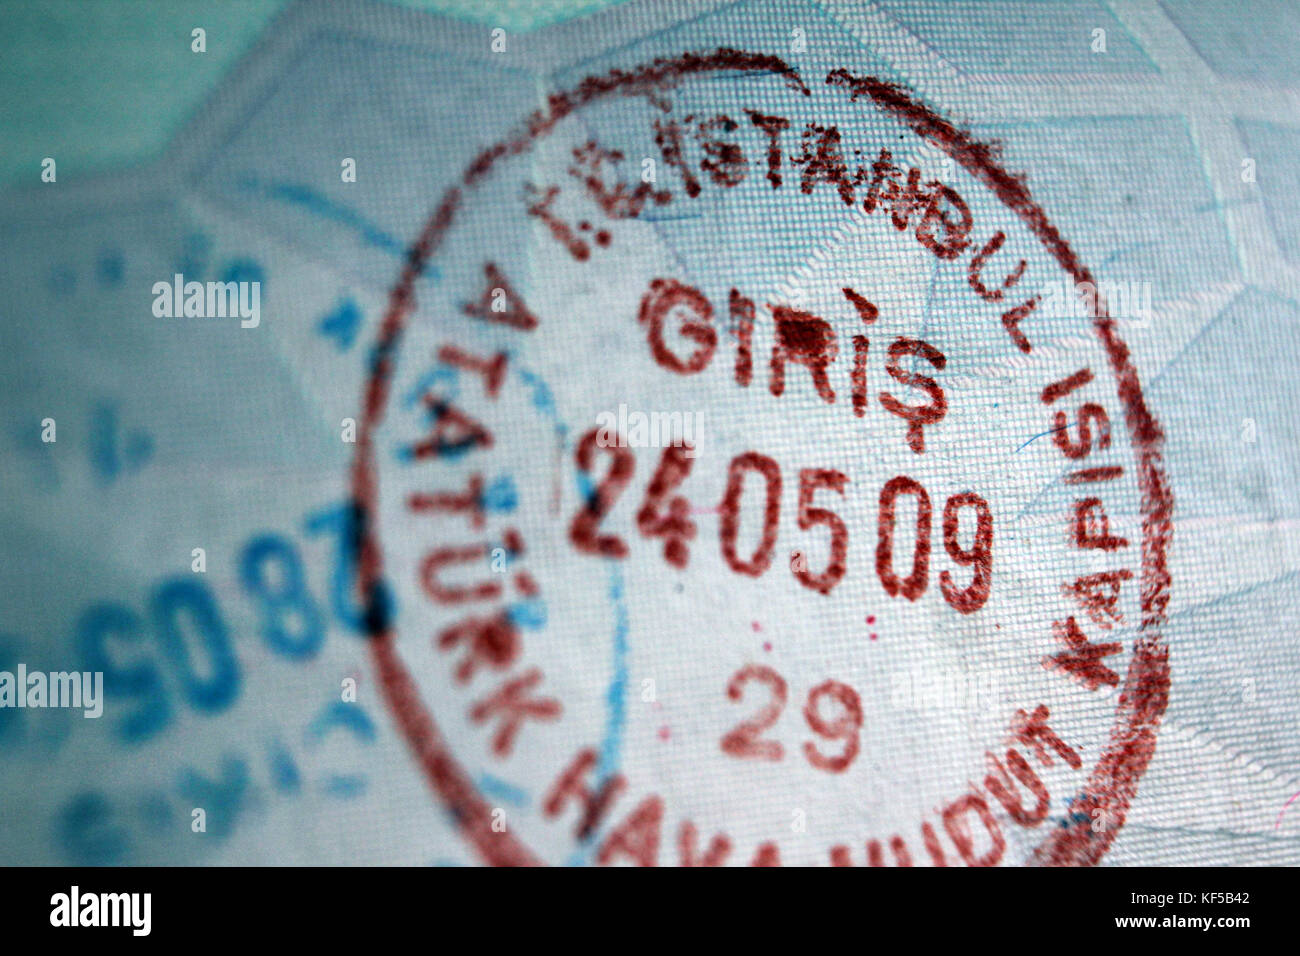 Detail of old passport with Turkey visa stamp - Stock Image